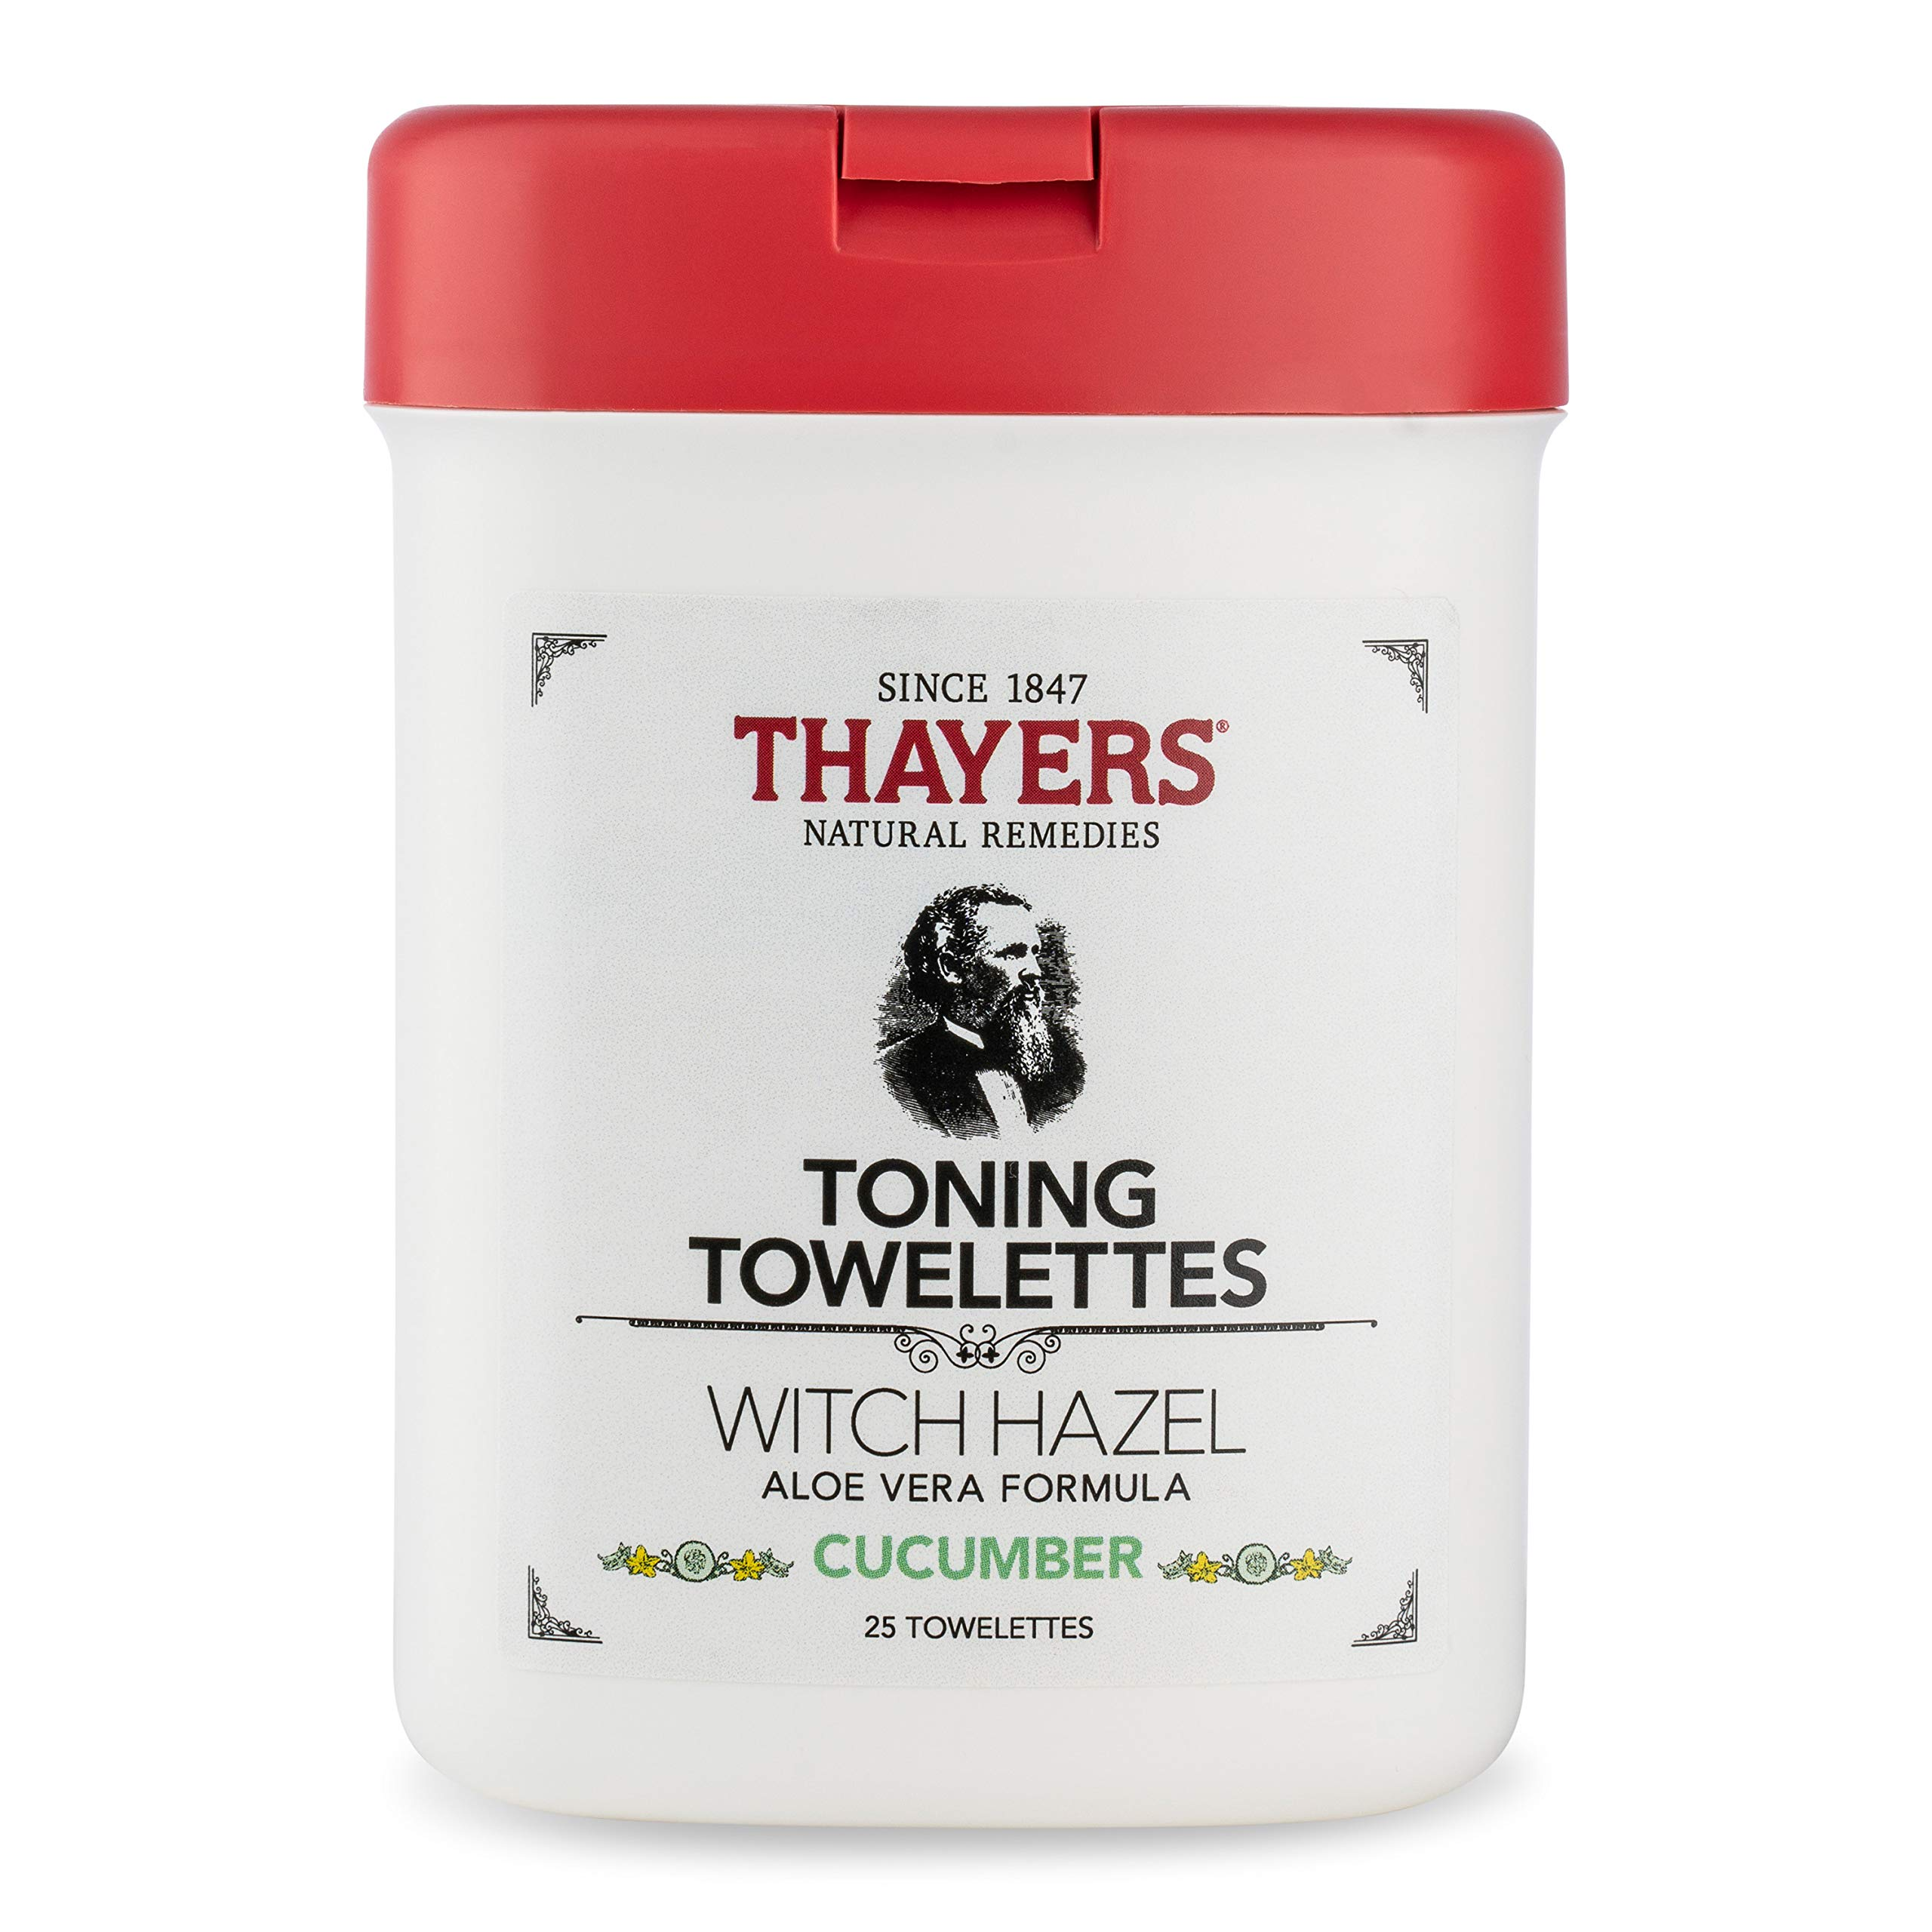 Thayers - Thayers Alcohol-Free Cucumber Witch Hazel Toning Towelettes, 25 Towelettes